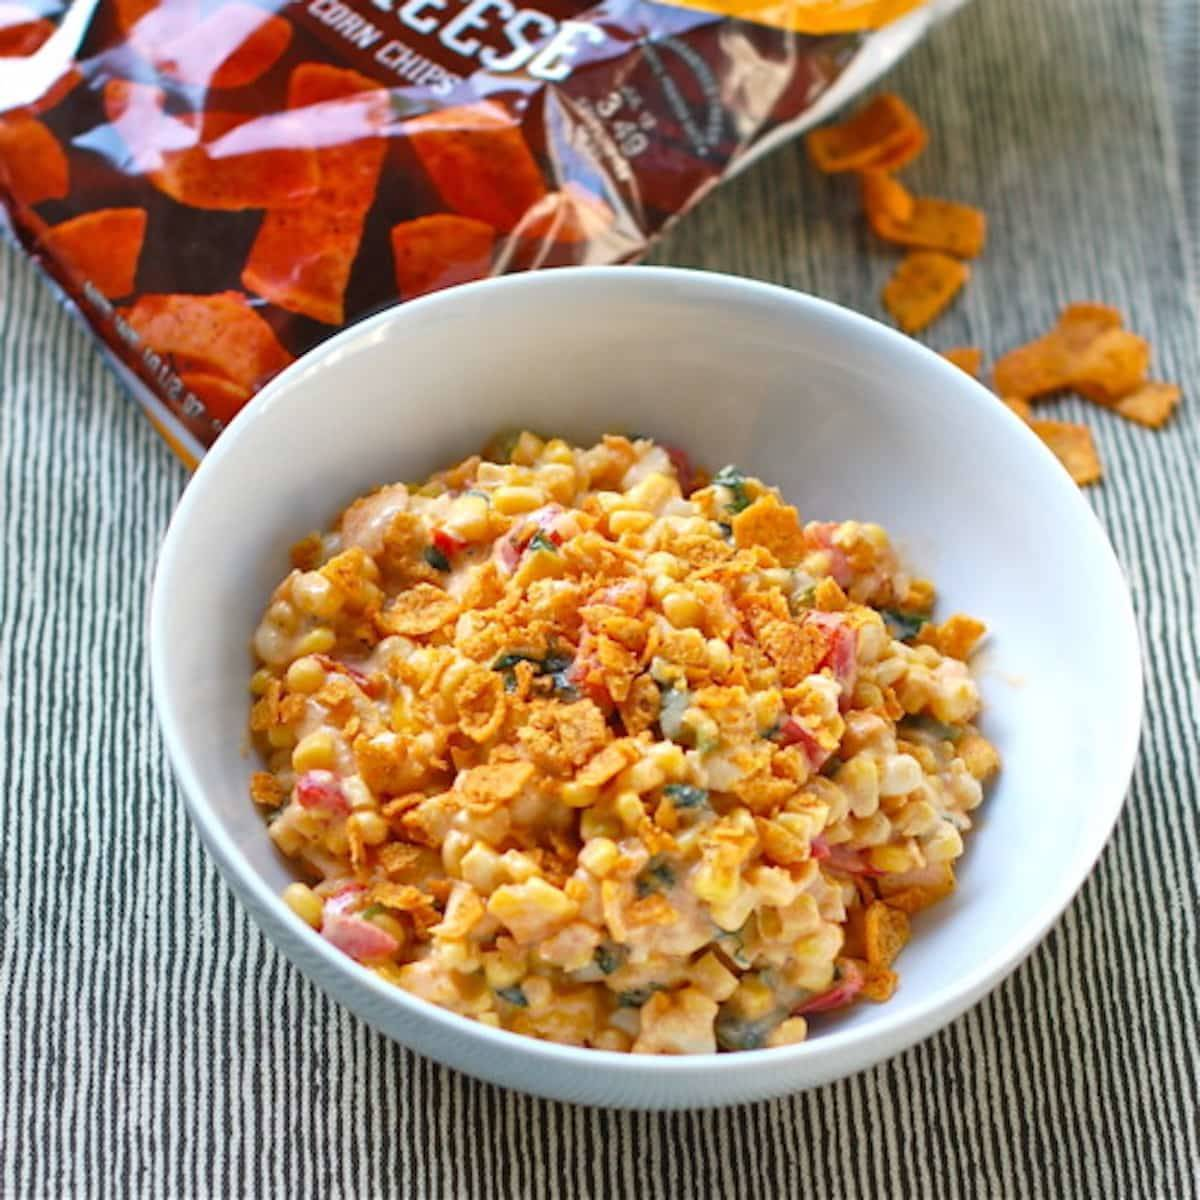 Spicy corn salad with fritos in a bowl.